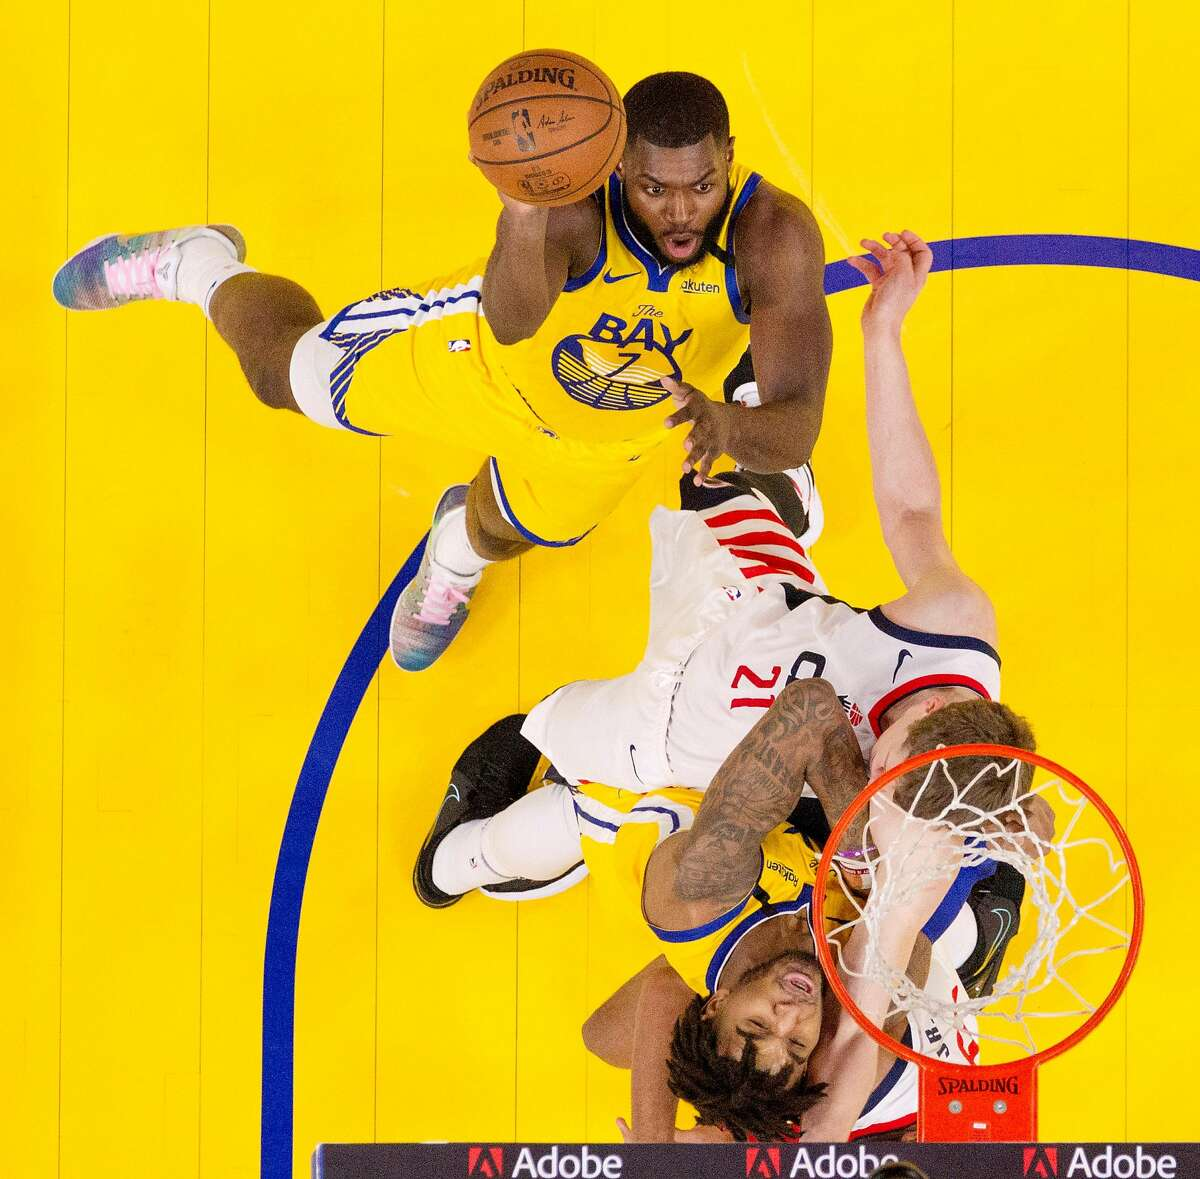 Eric Paschall (7) shoots in front of Moritz Wagner (21) in the first half as the Golden State Warriors played the Washington Wizards at Chase Center in San Francisco, Calif., on Sunday, March 1, 2020.